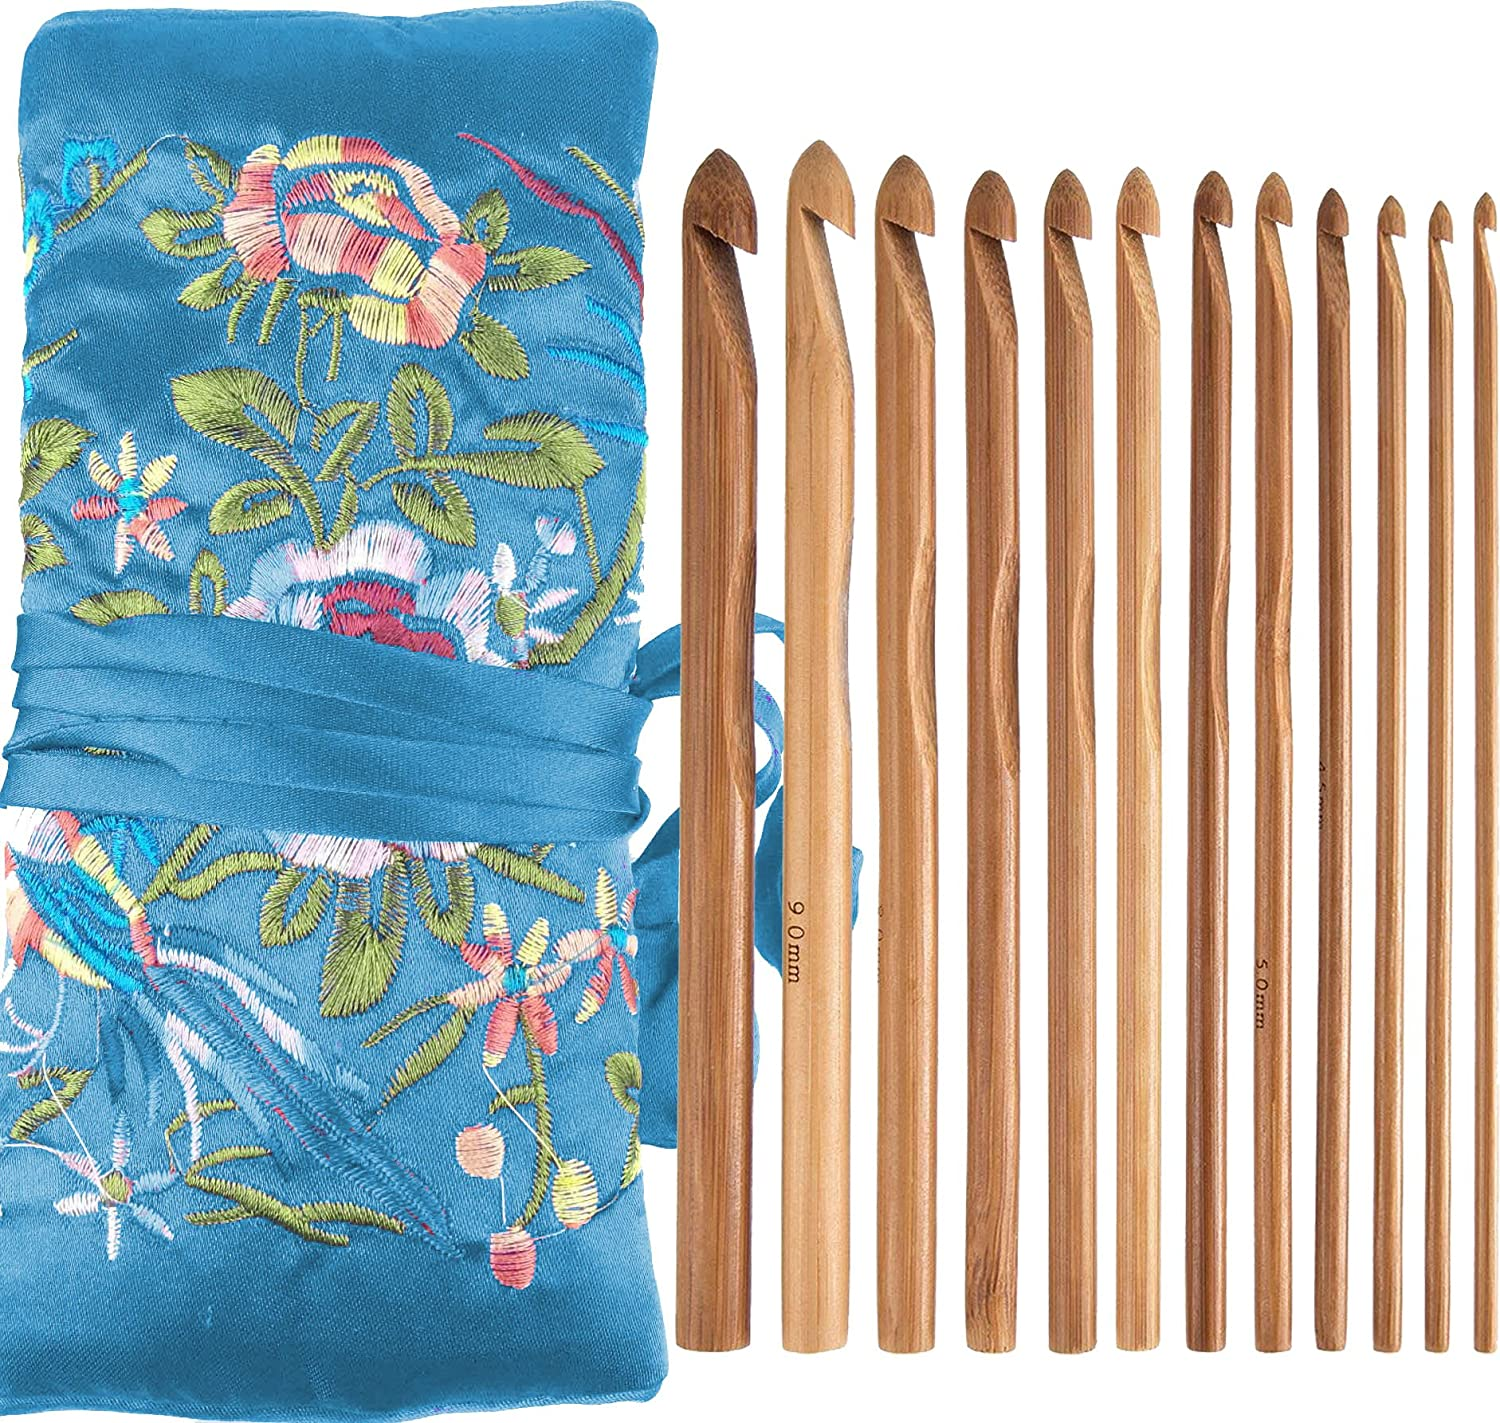 Bamboo Crochet Hooks Knitting Needles Set Kit in a Kntting Bag Case for Beginners and Professionals(12-Pack 3mm-10mm) RosaDIY